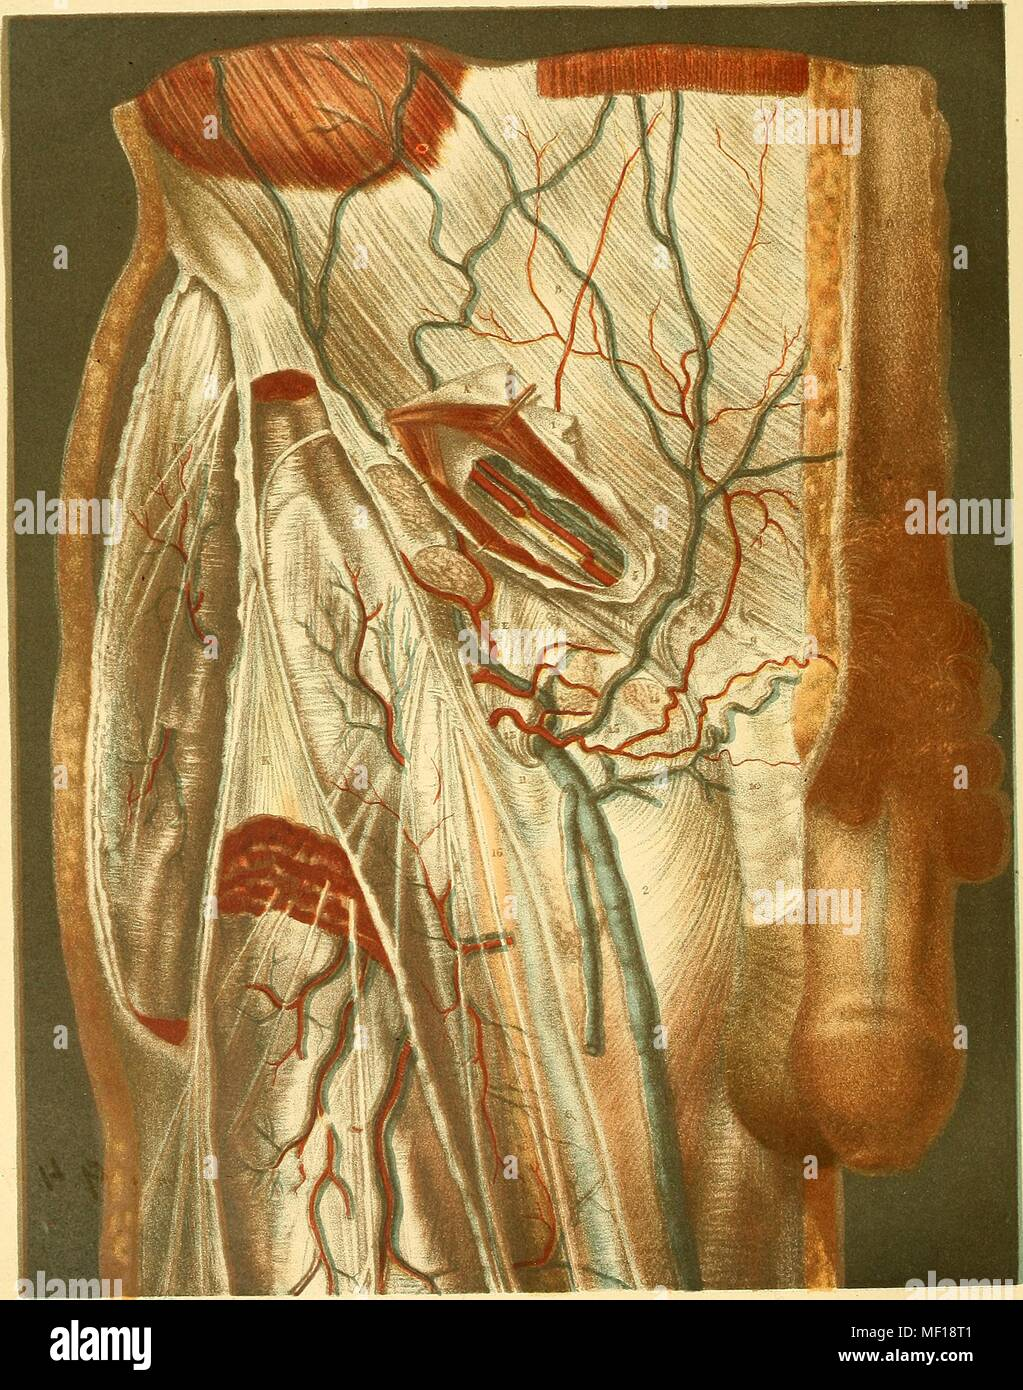 Anatomical illustration depicting a hernia as well as major veins and arteries, 1892. Courtesy Internet Archive. () - Stock Image